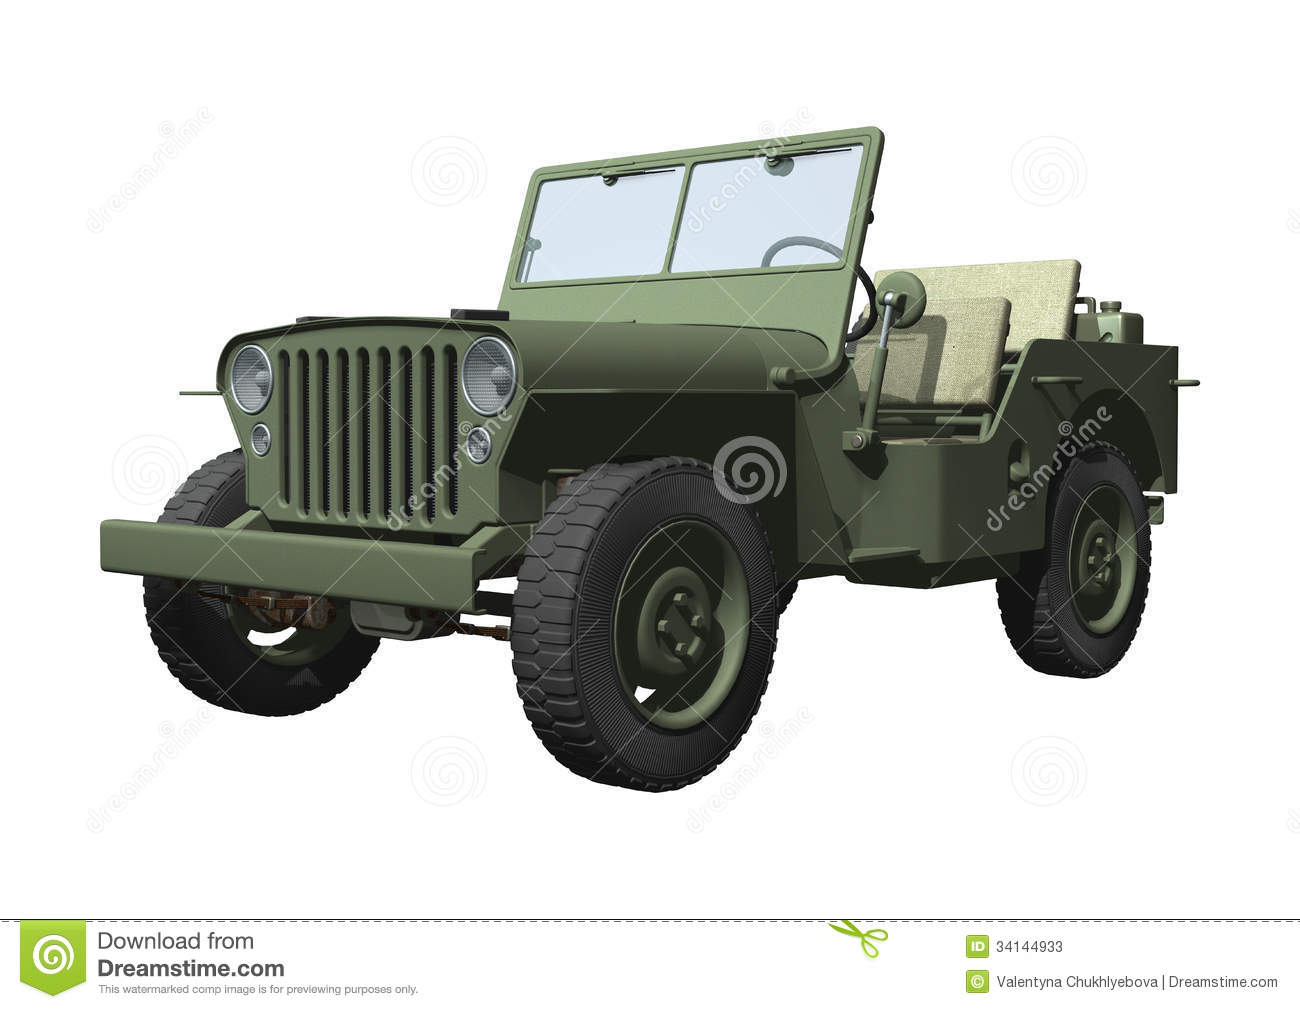 Green Jeep Wrangler >> Jeep stock illustration. Image of rendered, retro, vehicle - 34144933